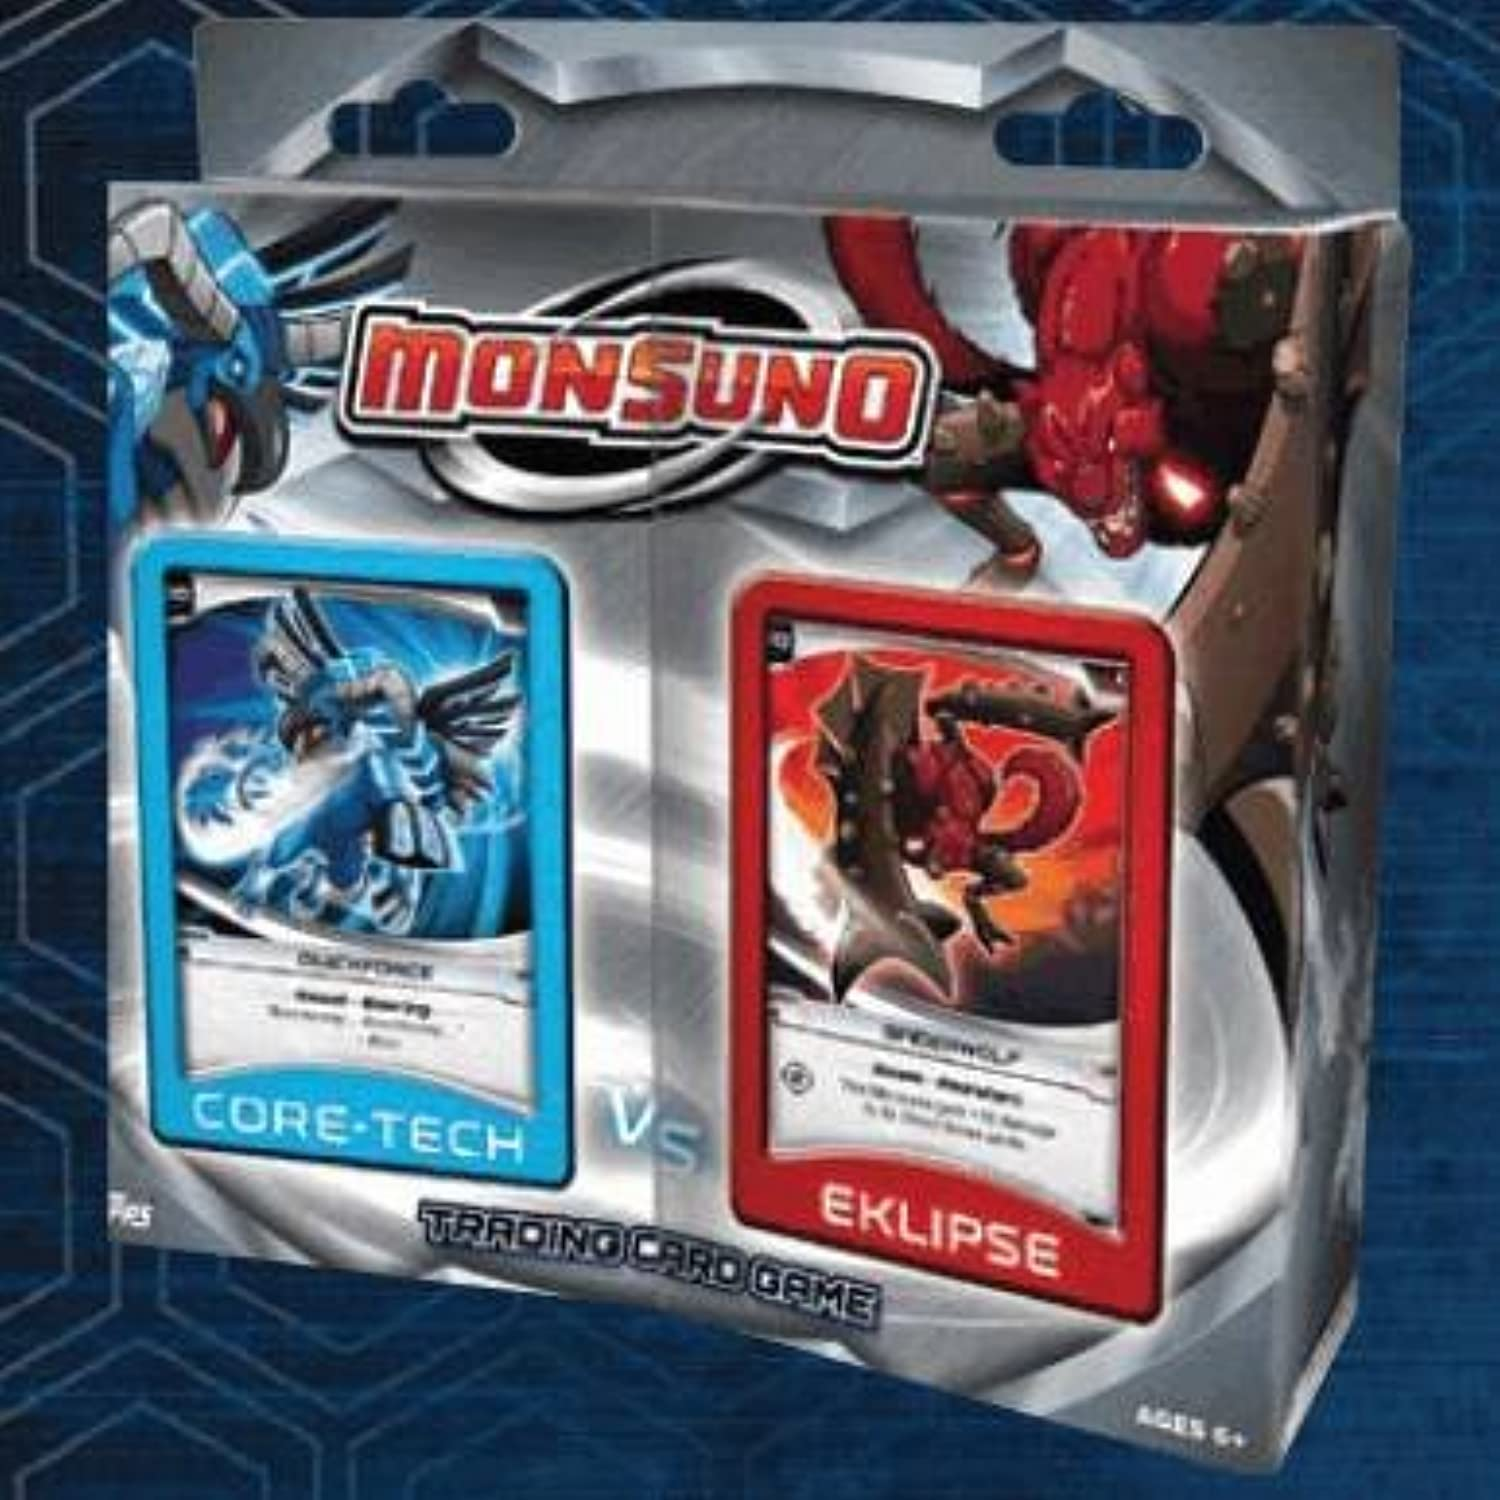 2012 Monsuno TCG Trading Card Game  CoreTech vs Eklipse (TwoPlayer Theme Starter Deck) QuickForce vs SpiderWolf by Topps